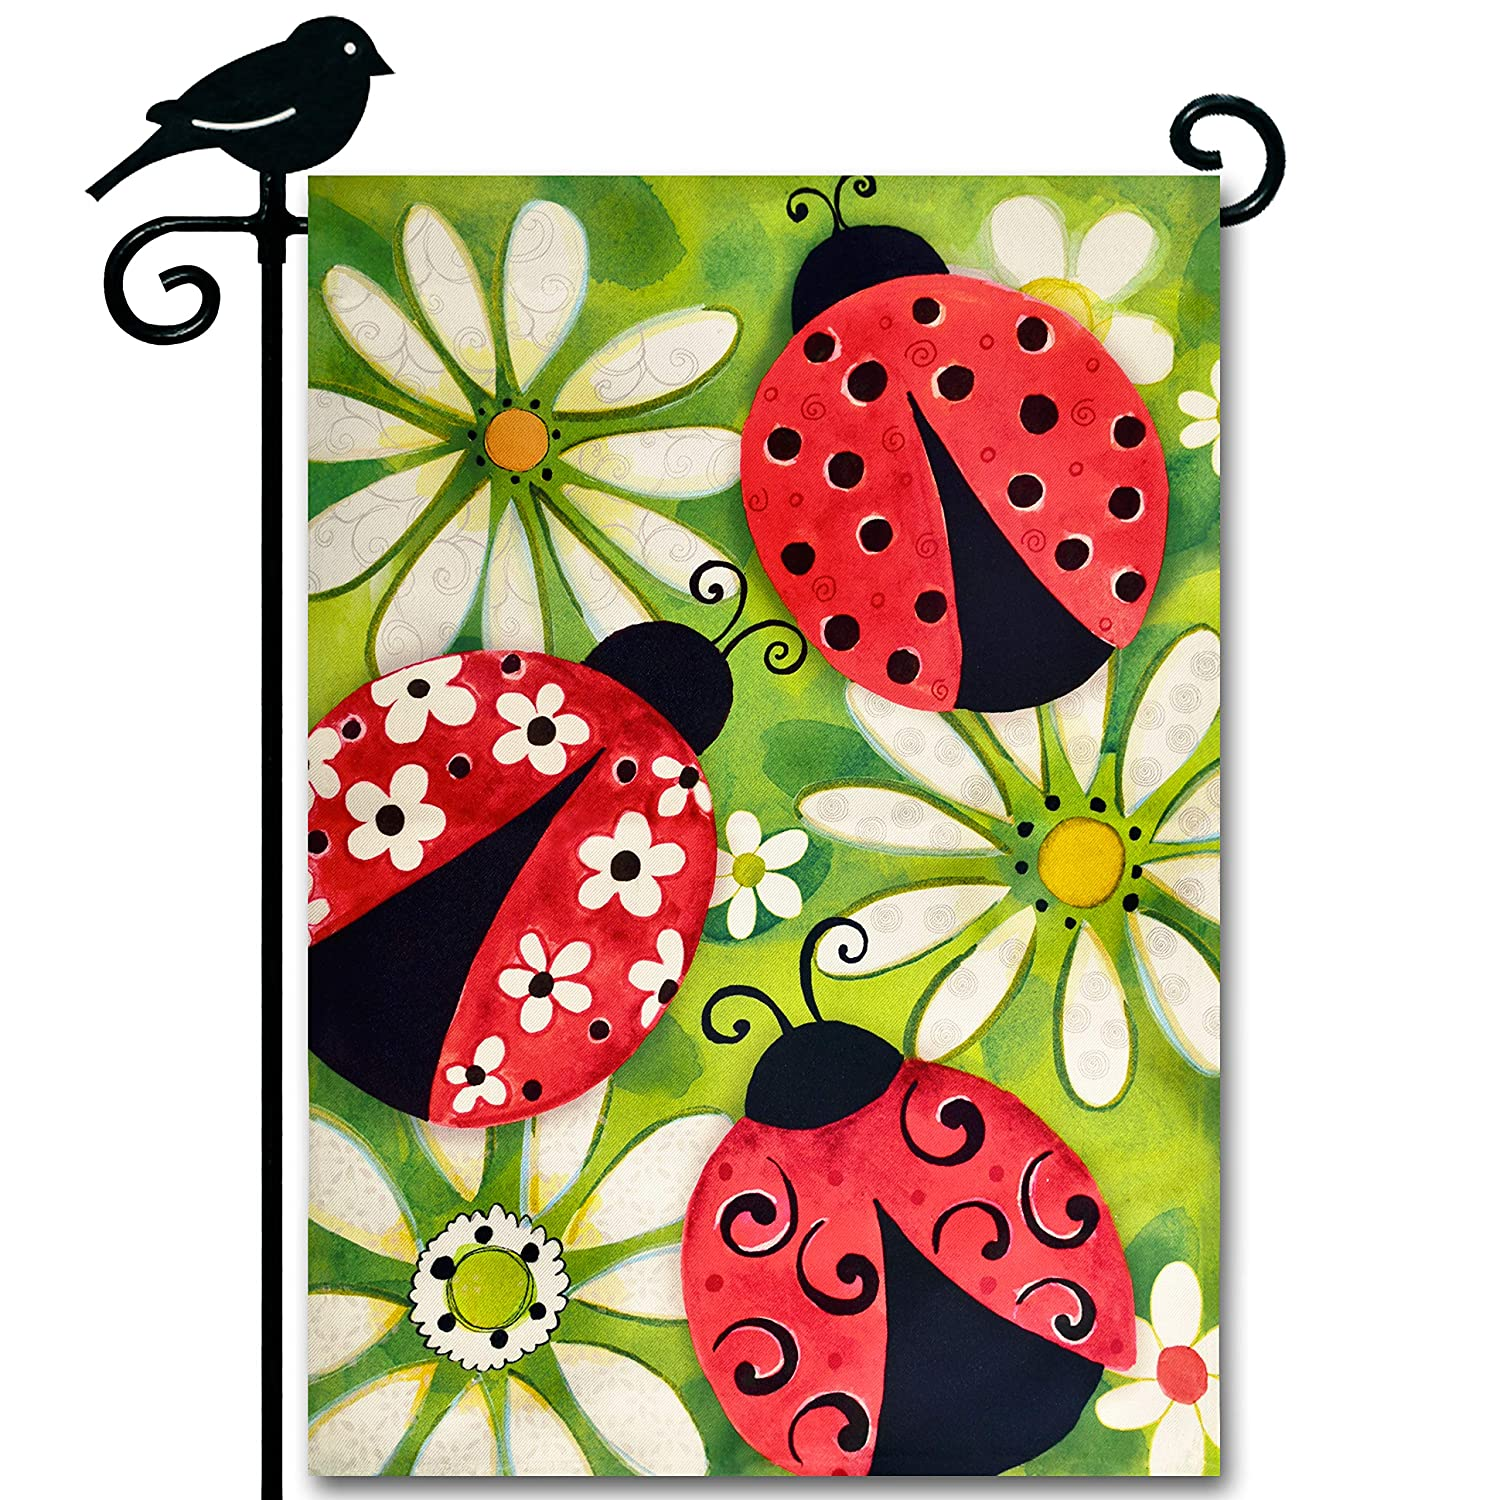 LAYOER Garden flag 12.5 x 18 inches Red ladybug White Flowers daisy outdoor Spring decor